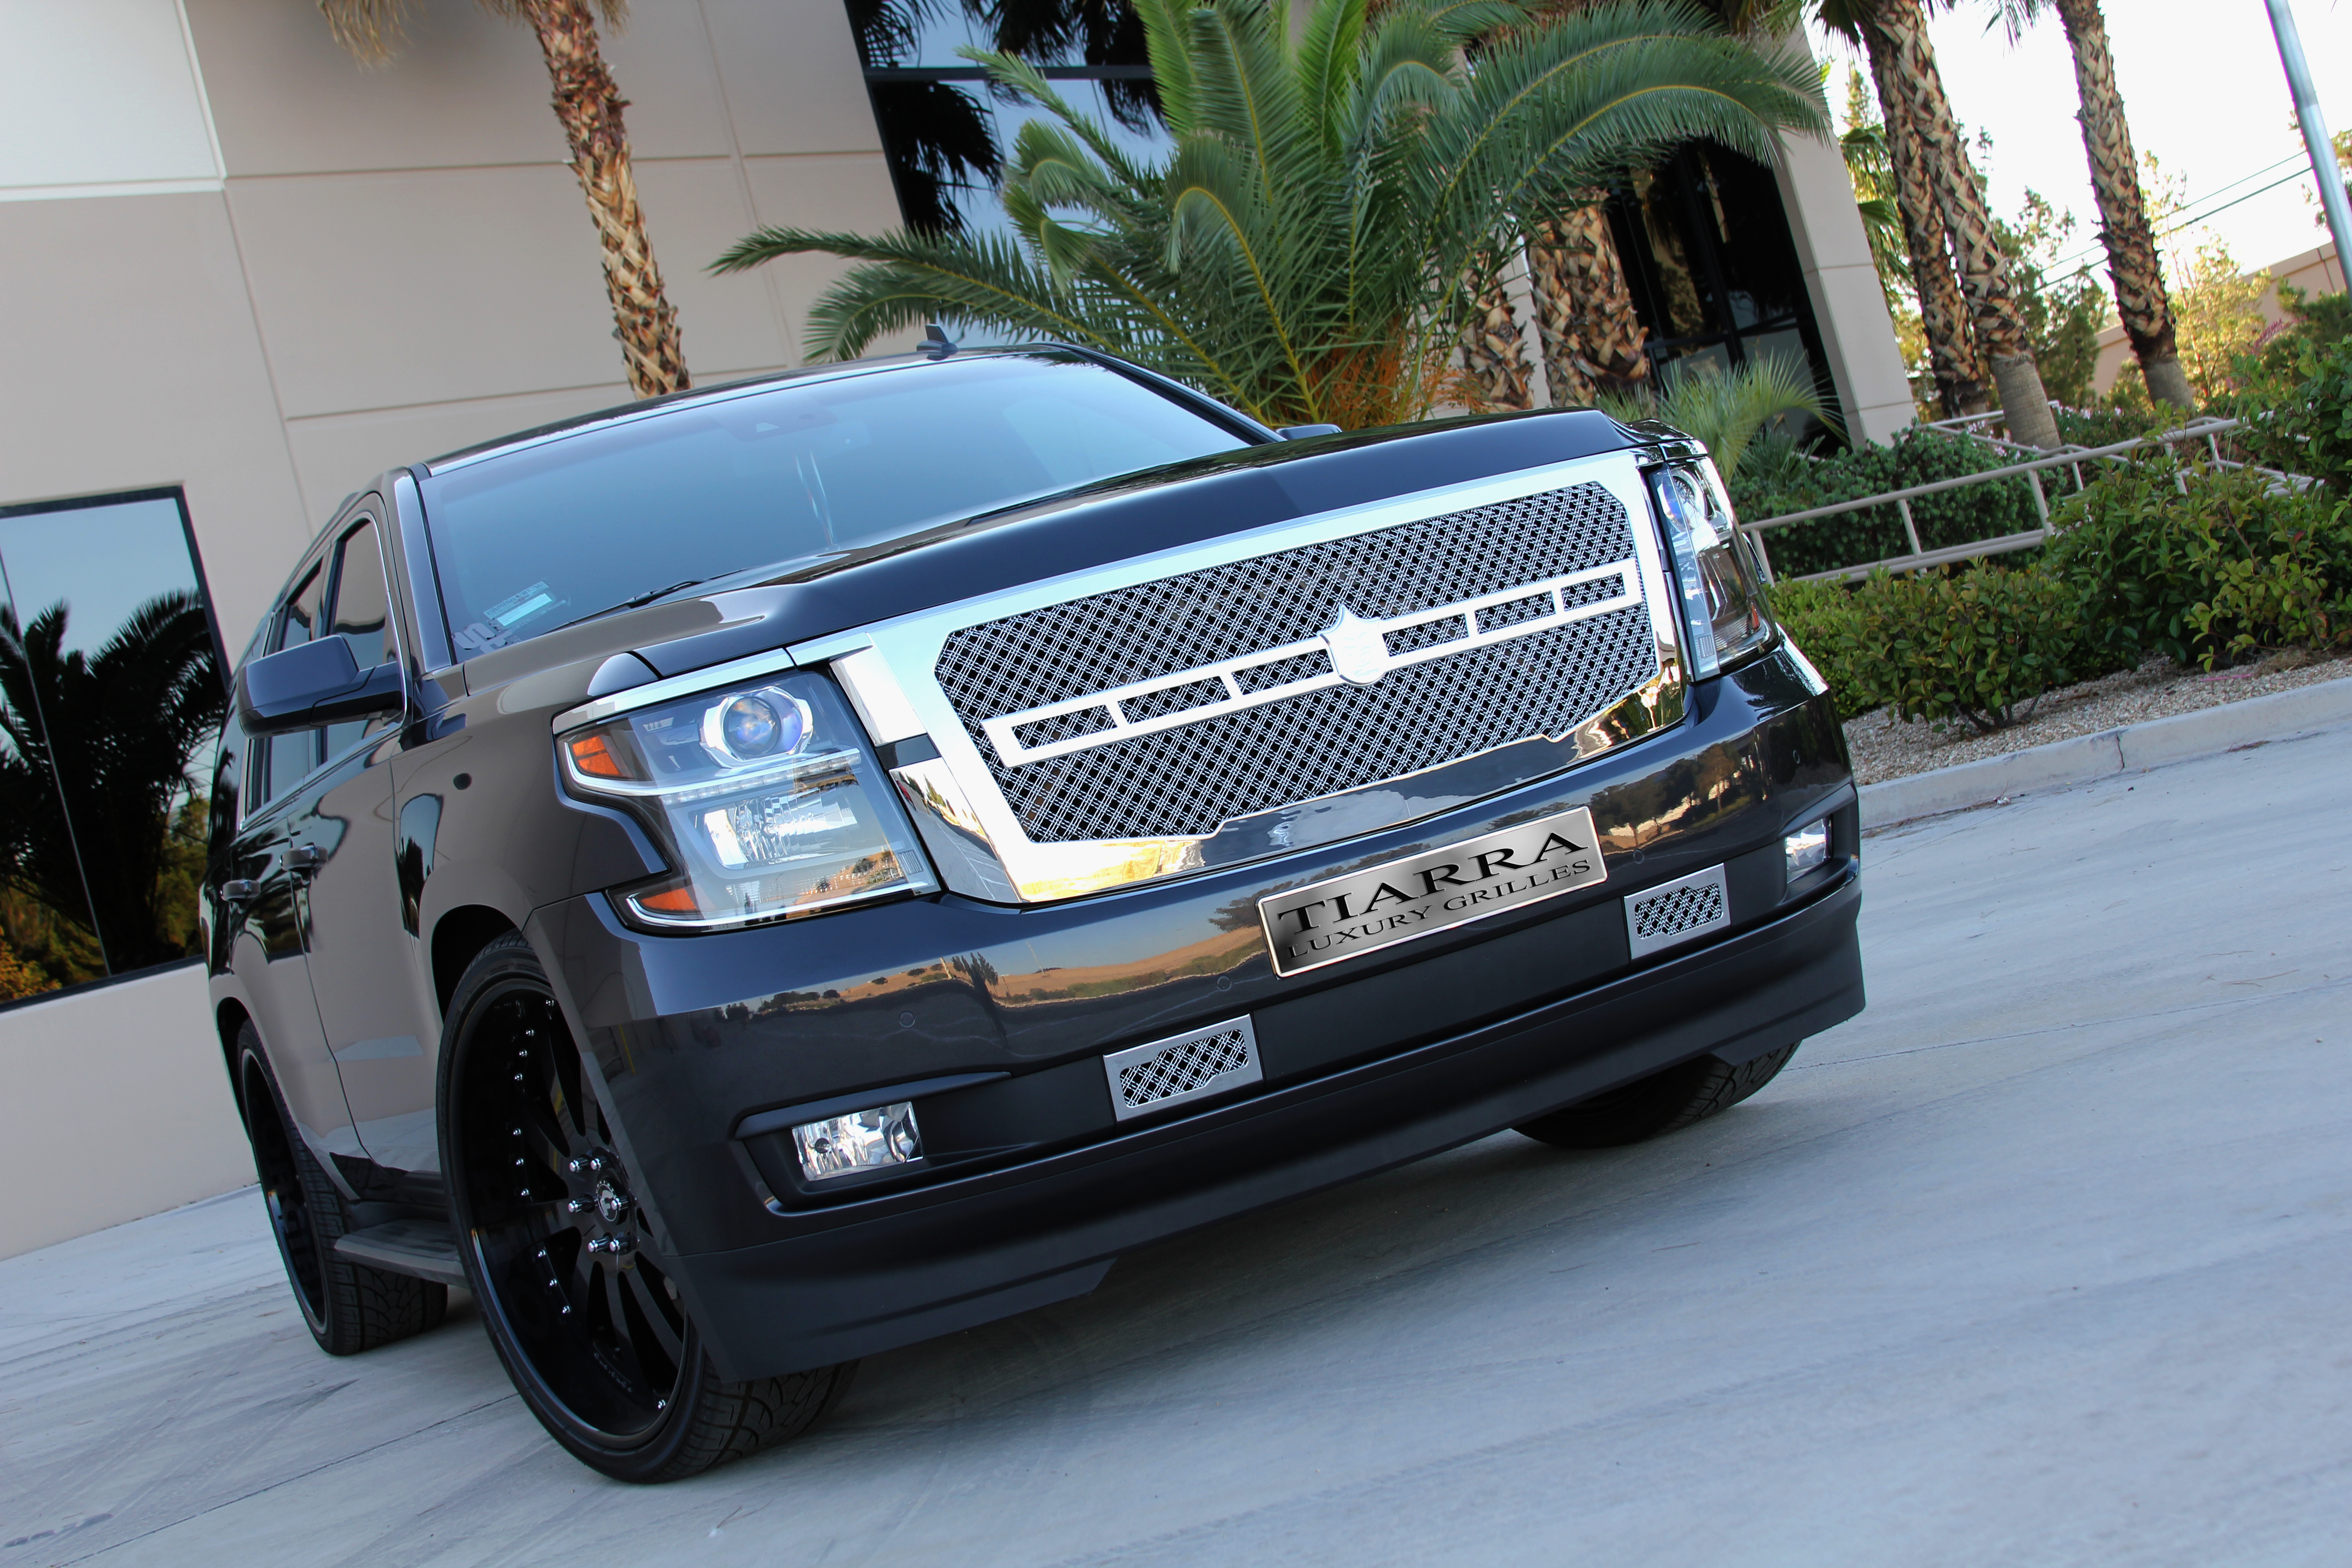 2015 Chevy Tahoe Tiarra Grille Package - Rides Magazine